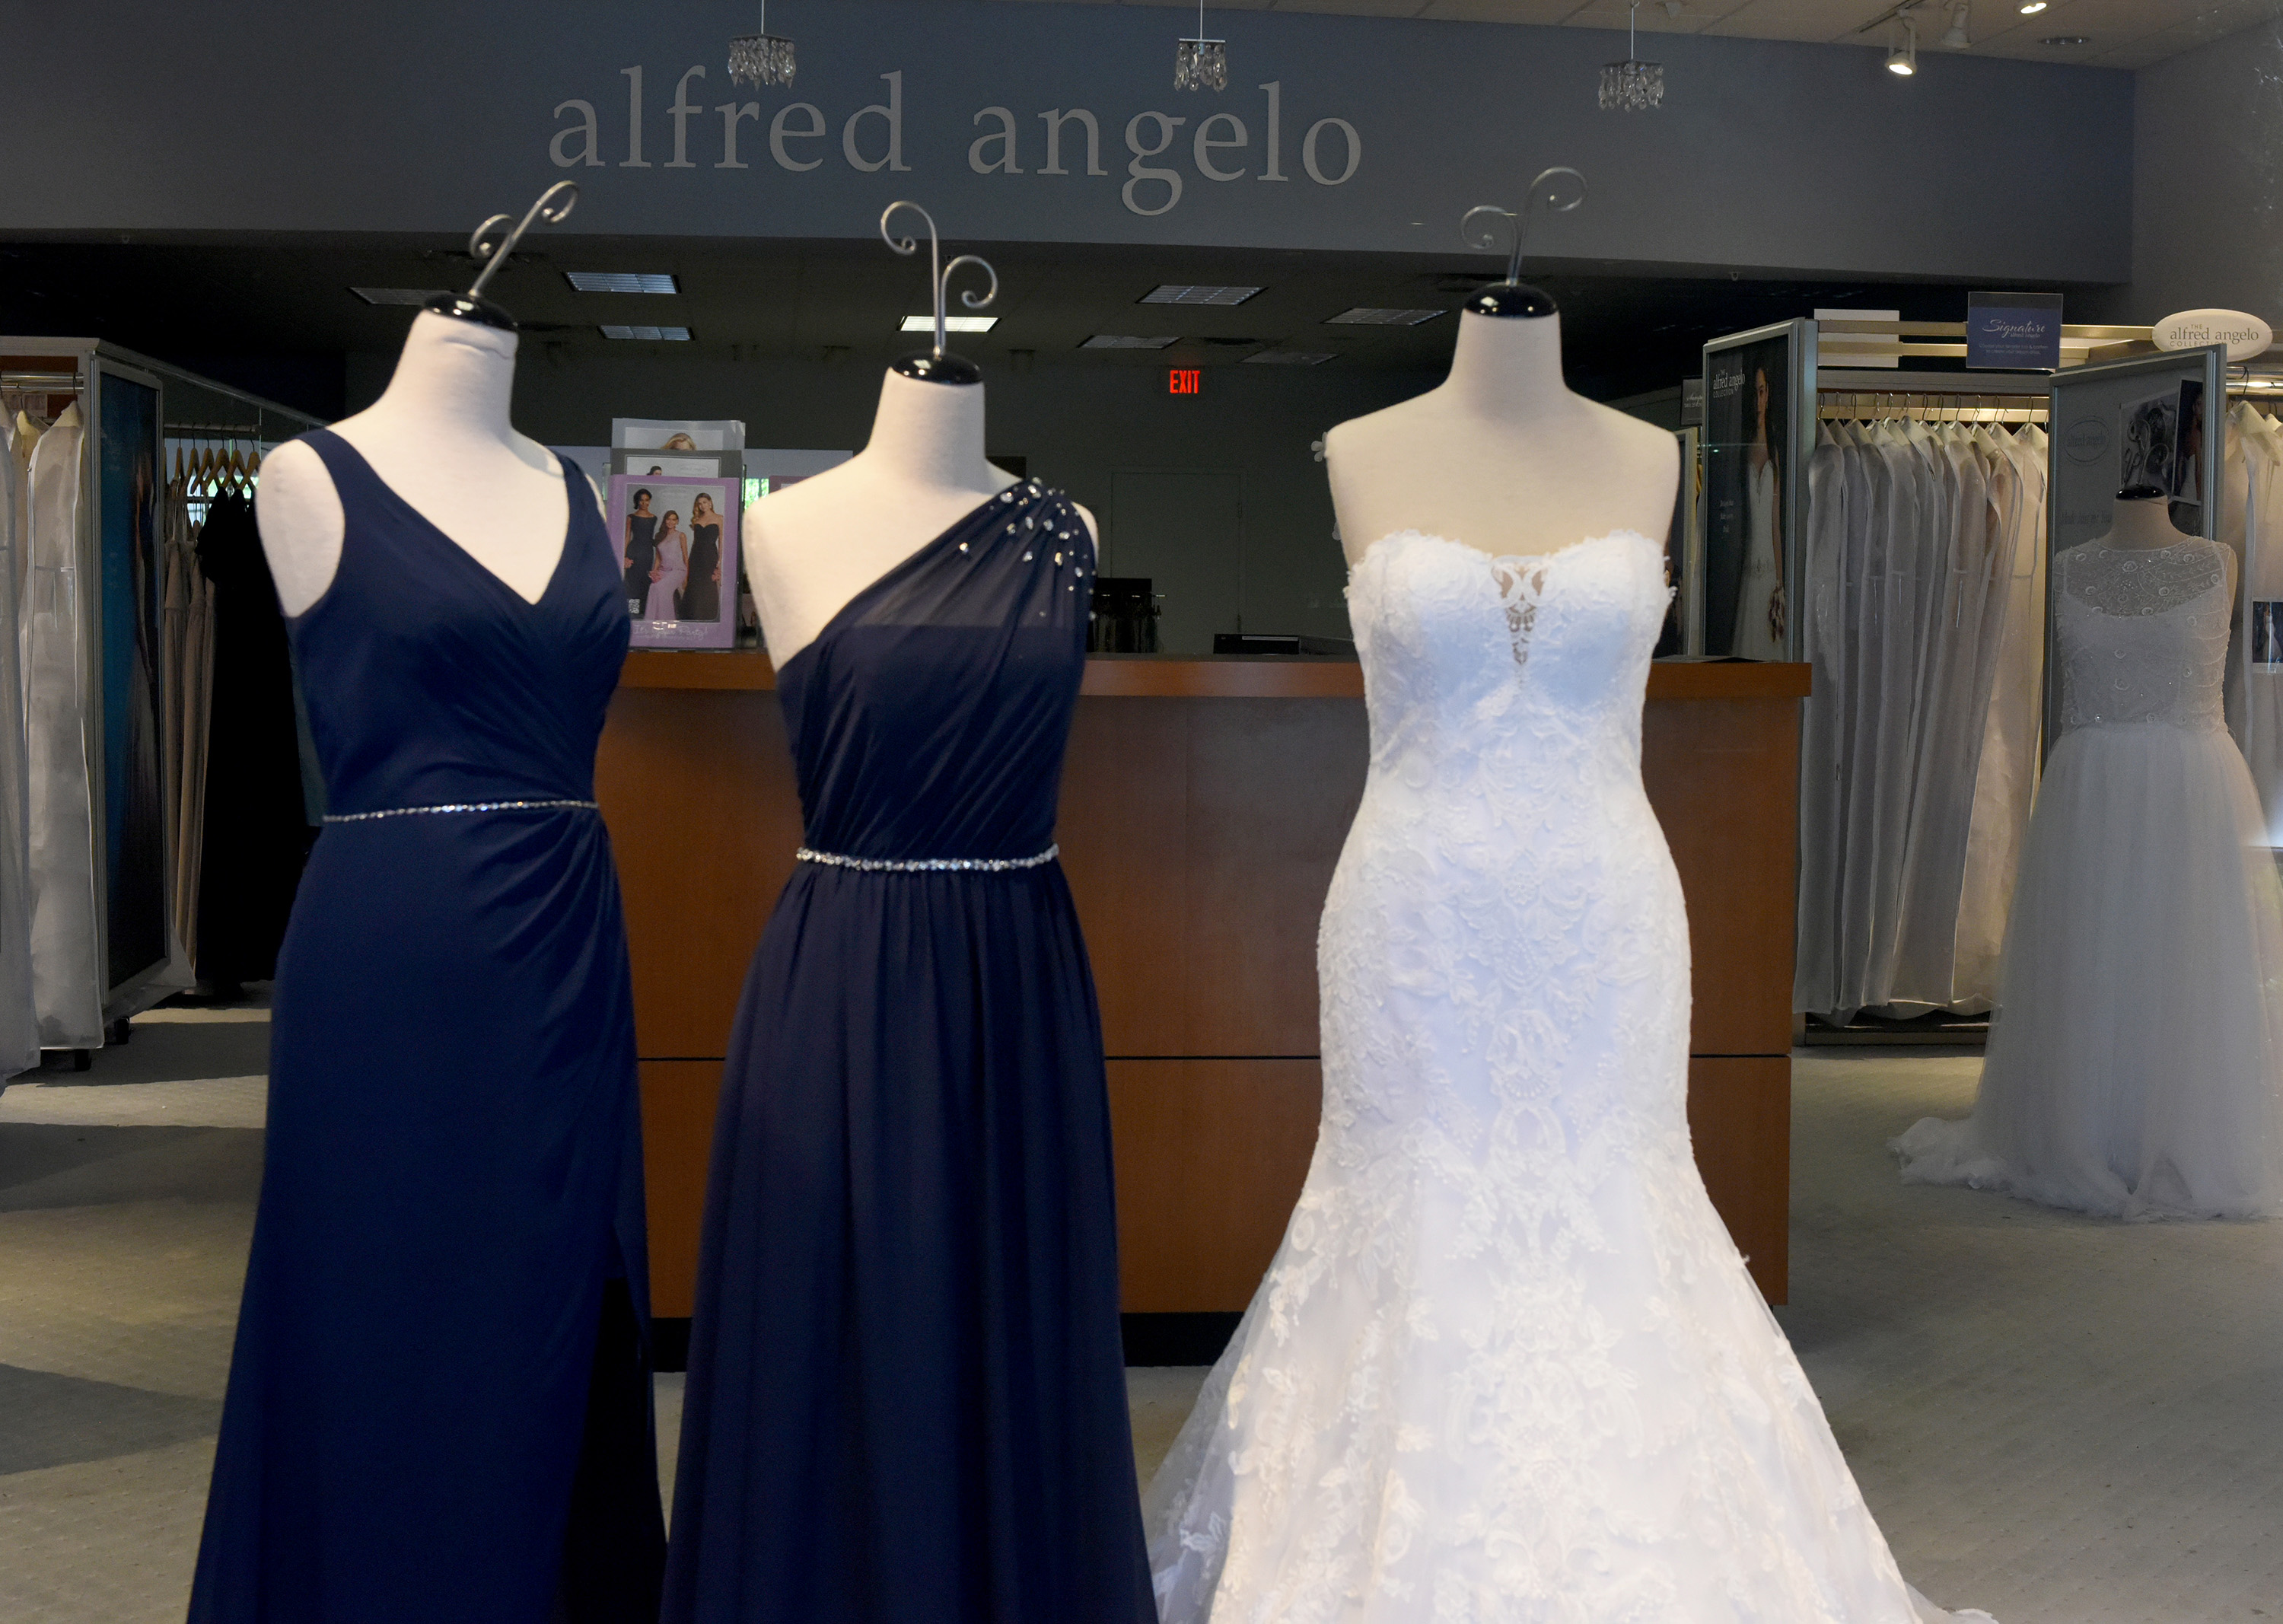 Abandoned gowns for sale for 60 to 75 percent off at Alfred Angelo